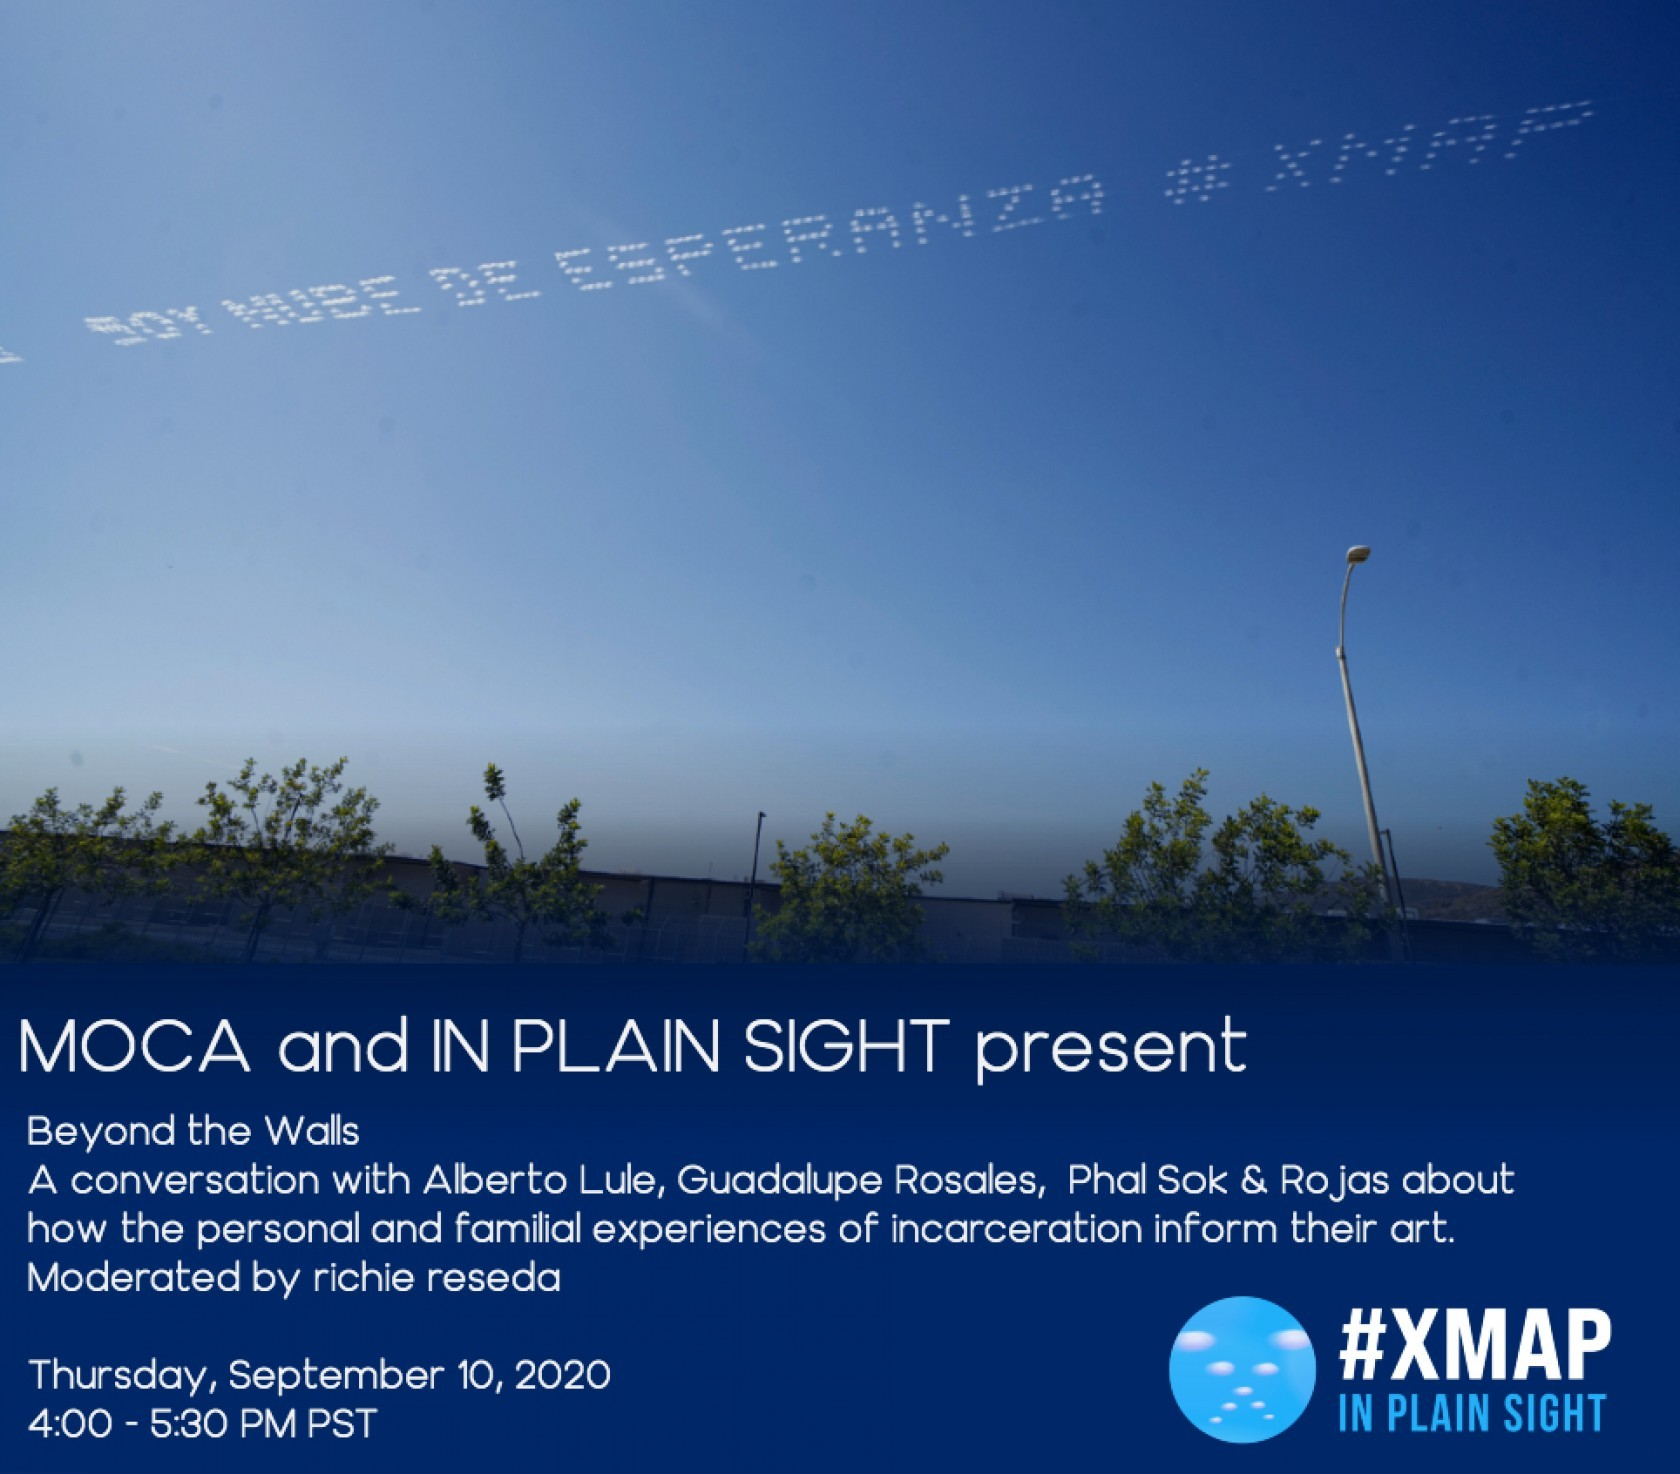 XMAP: In Plain Sight,  Beyond the Walls